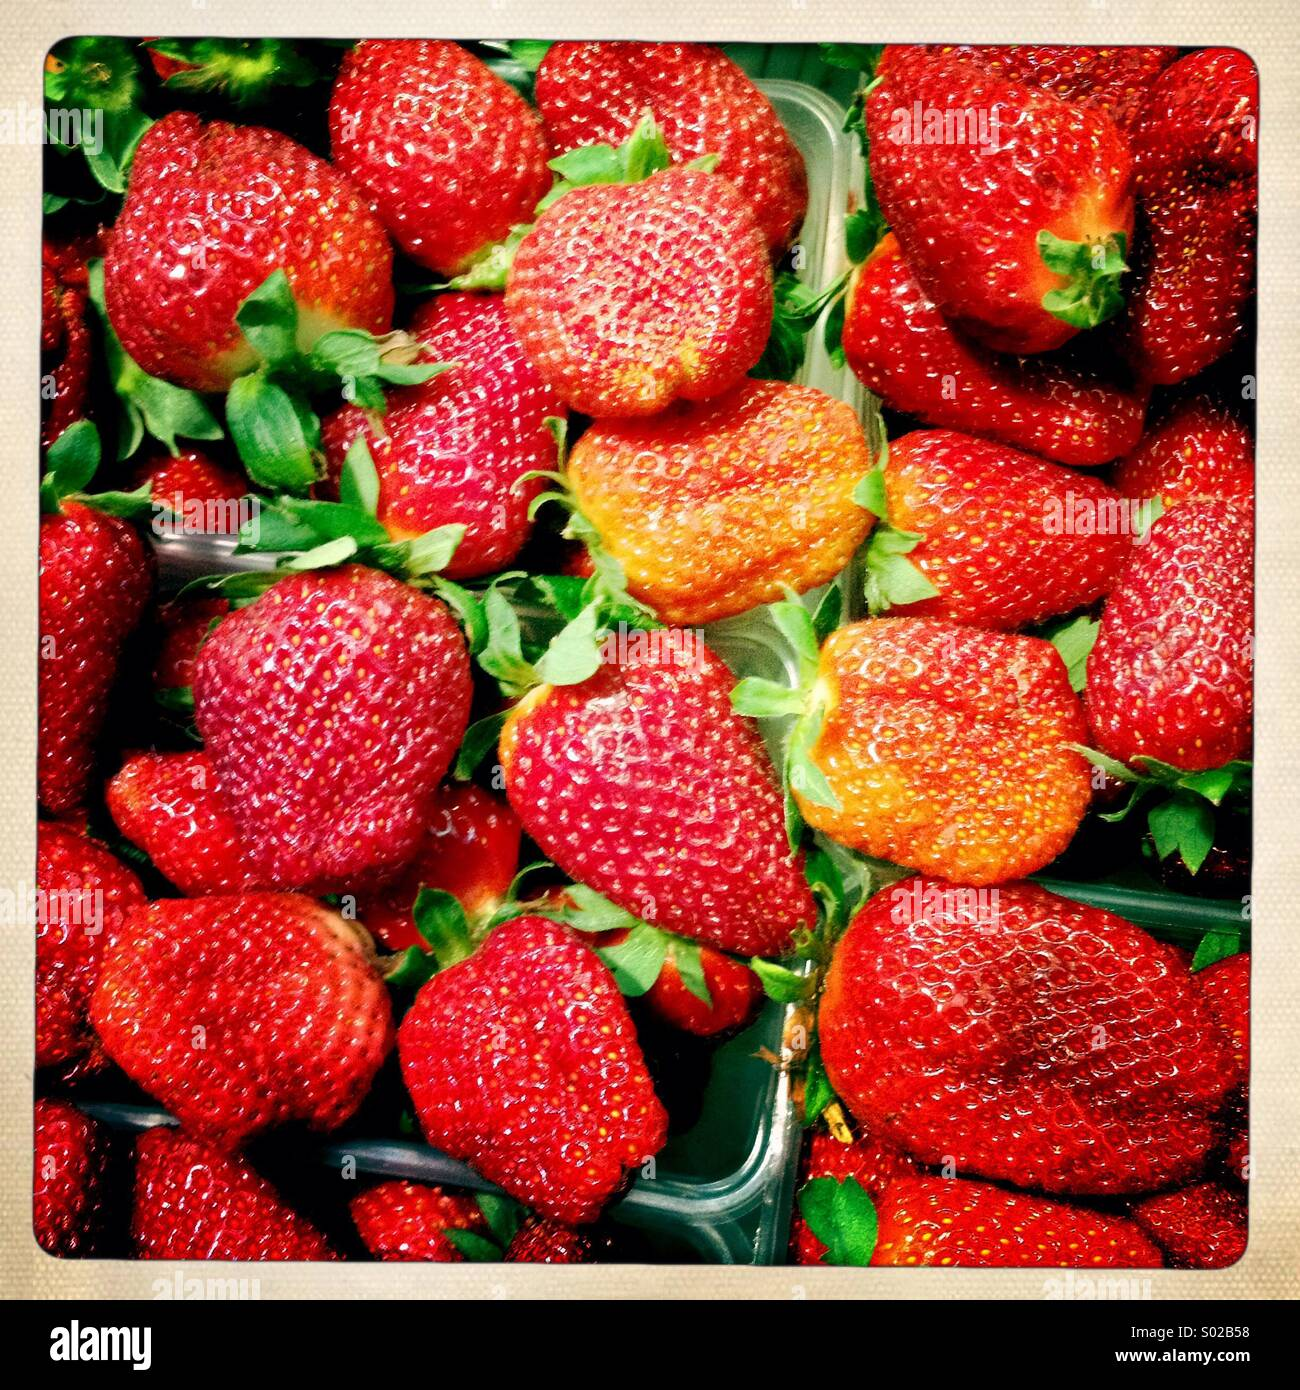 Red strawberries - Stock Image